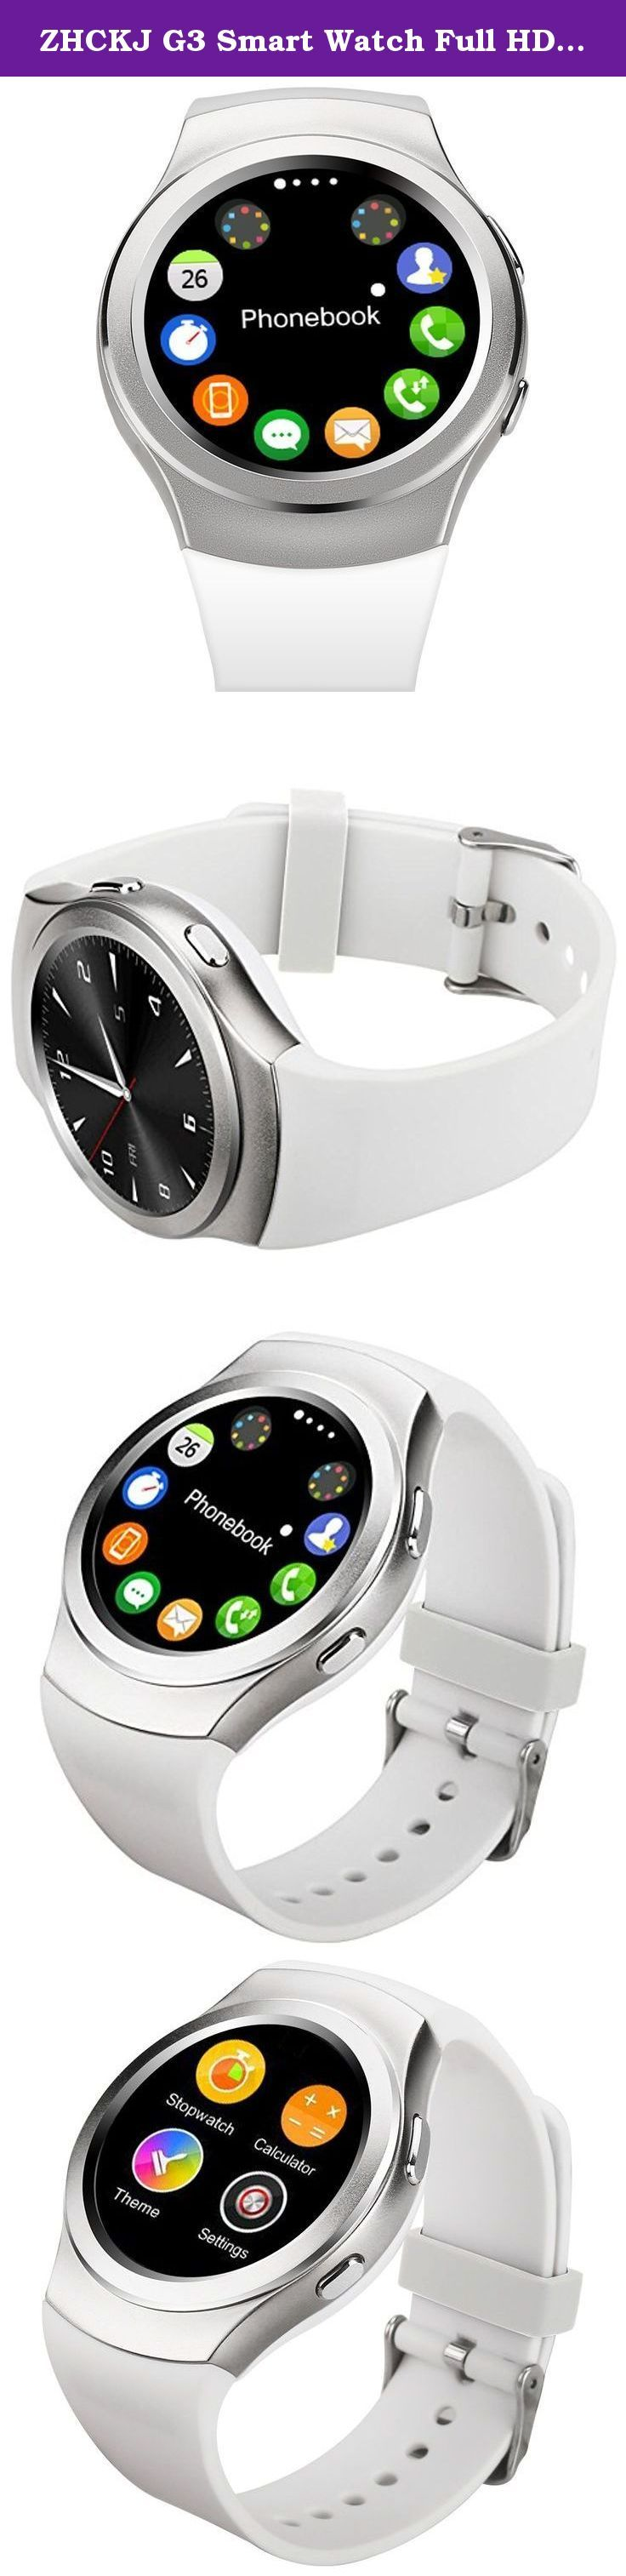 ZHCKJ G3 Smart Watch Full HD Screen SIM TF card Fitness tracker Bluetooth smartwatch For Android IOS samsung. Highlights . 1.3'' IPS Full circular capative touch screen , no black bar . MTK2502 CPU , Fully compatible with Apple iPhone & Android Phone . Support SIM / TF Card Slot , Allow you use the watch independently and download the APPs . Stainless Steel Body + TPU Watchband , Durable and Comfortable . 380mAh Large capacity battery , Long time standby . Magnetic Suction Charging…